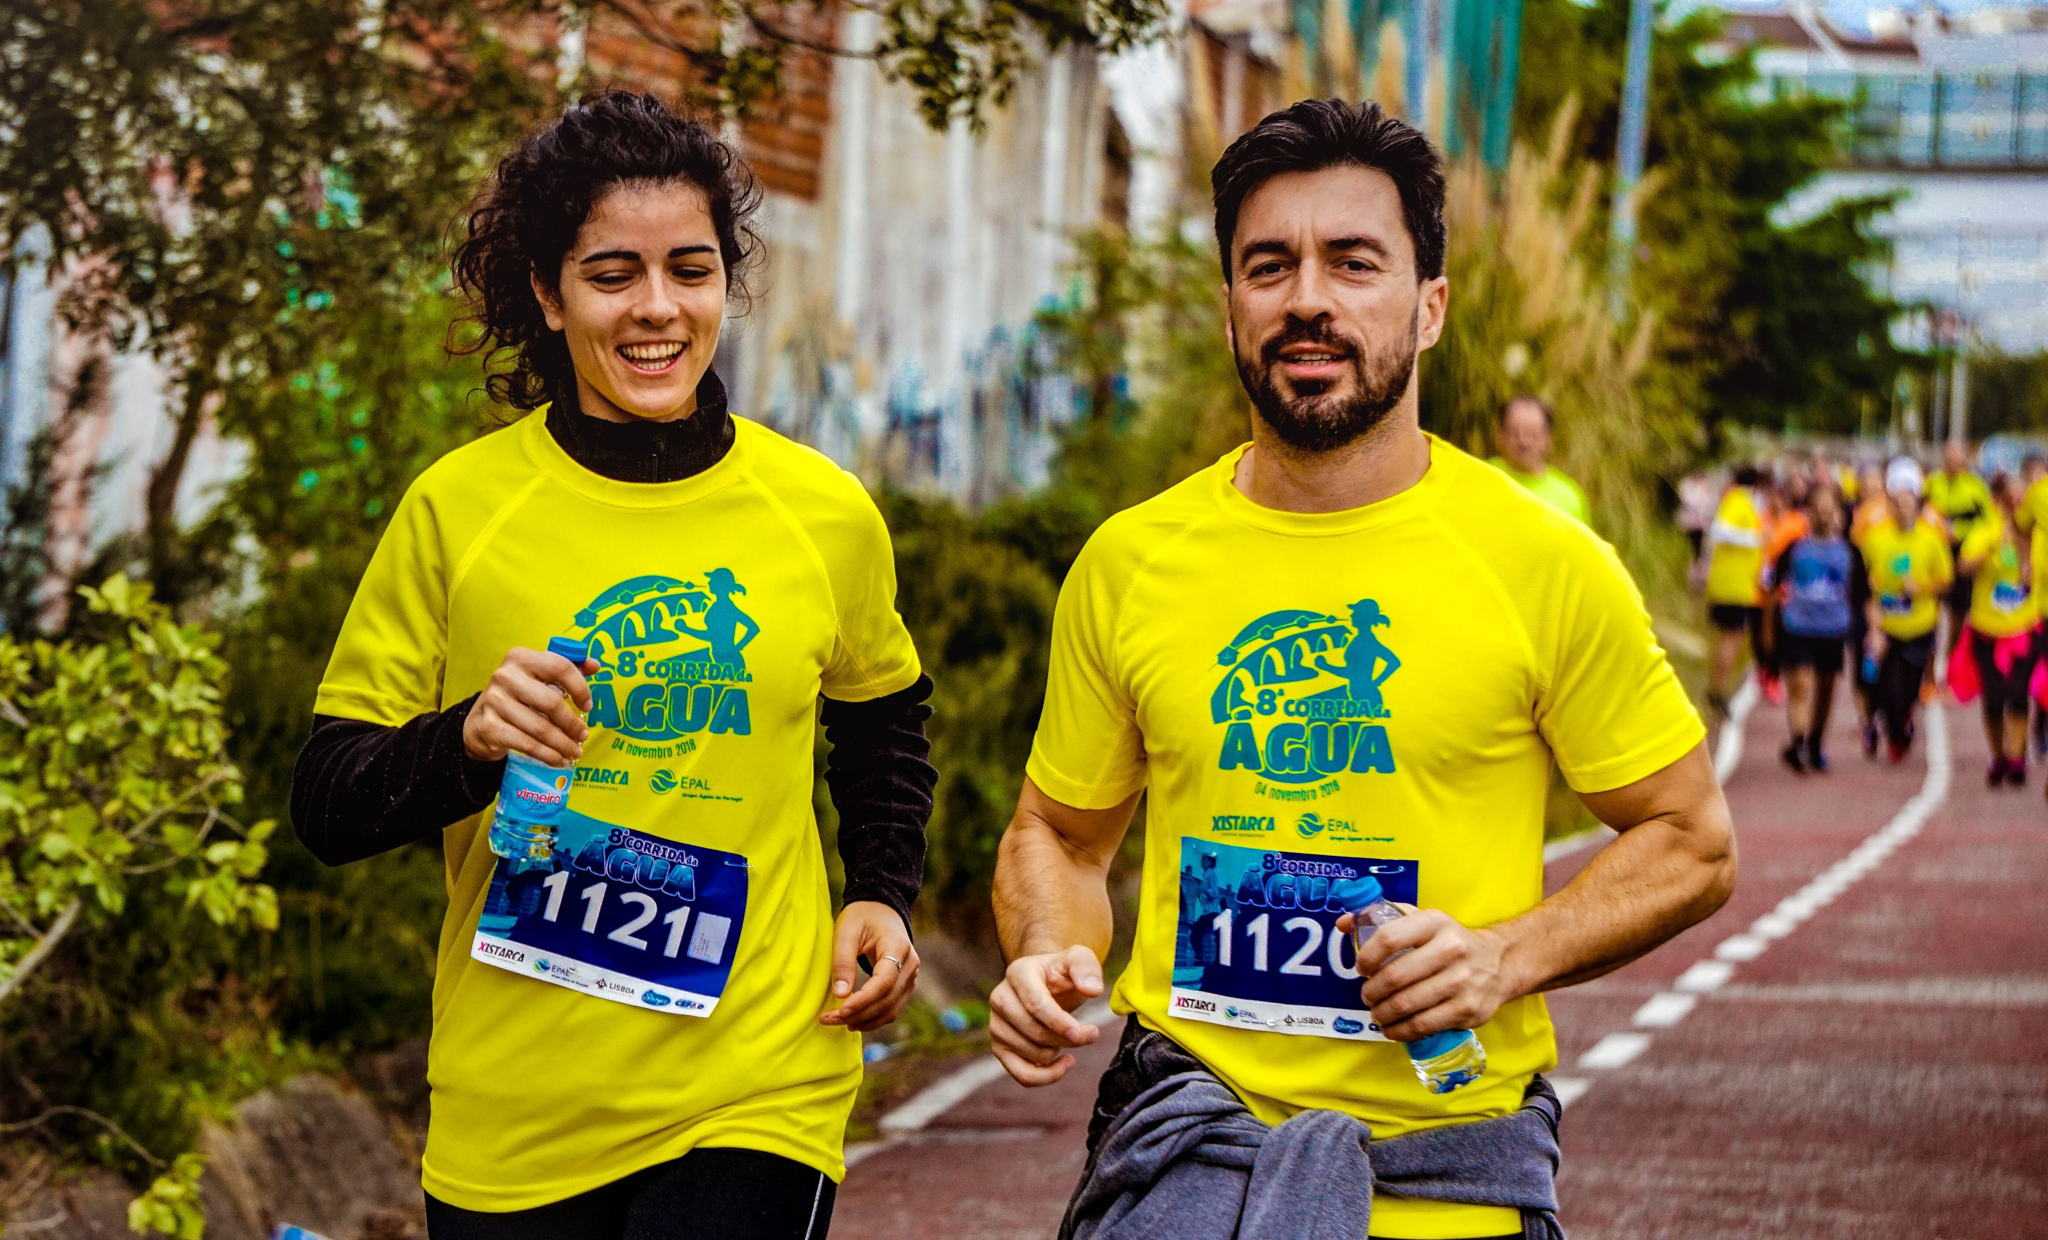 A multi ethnic older man and woman running on a track wearing numbers participating in a race.